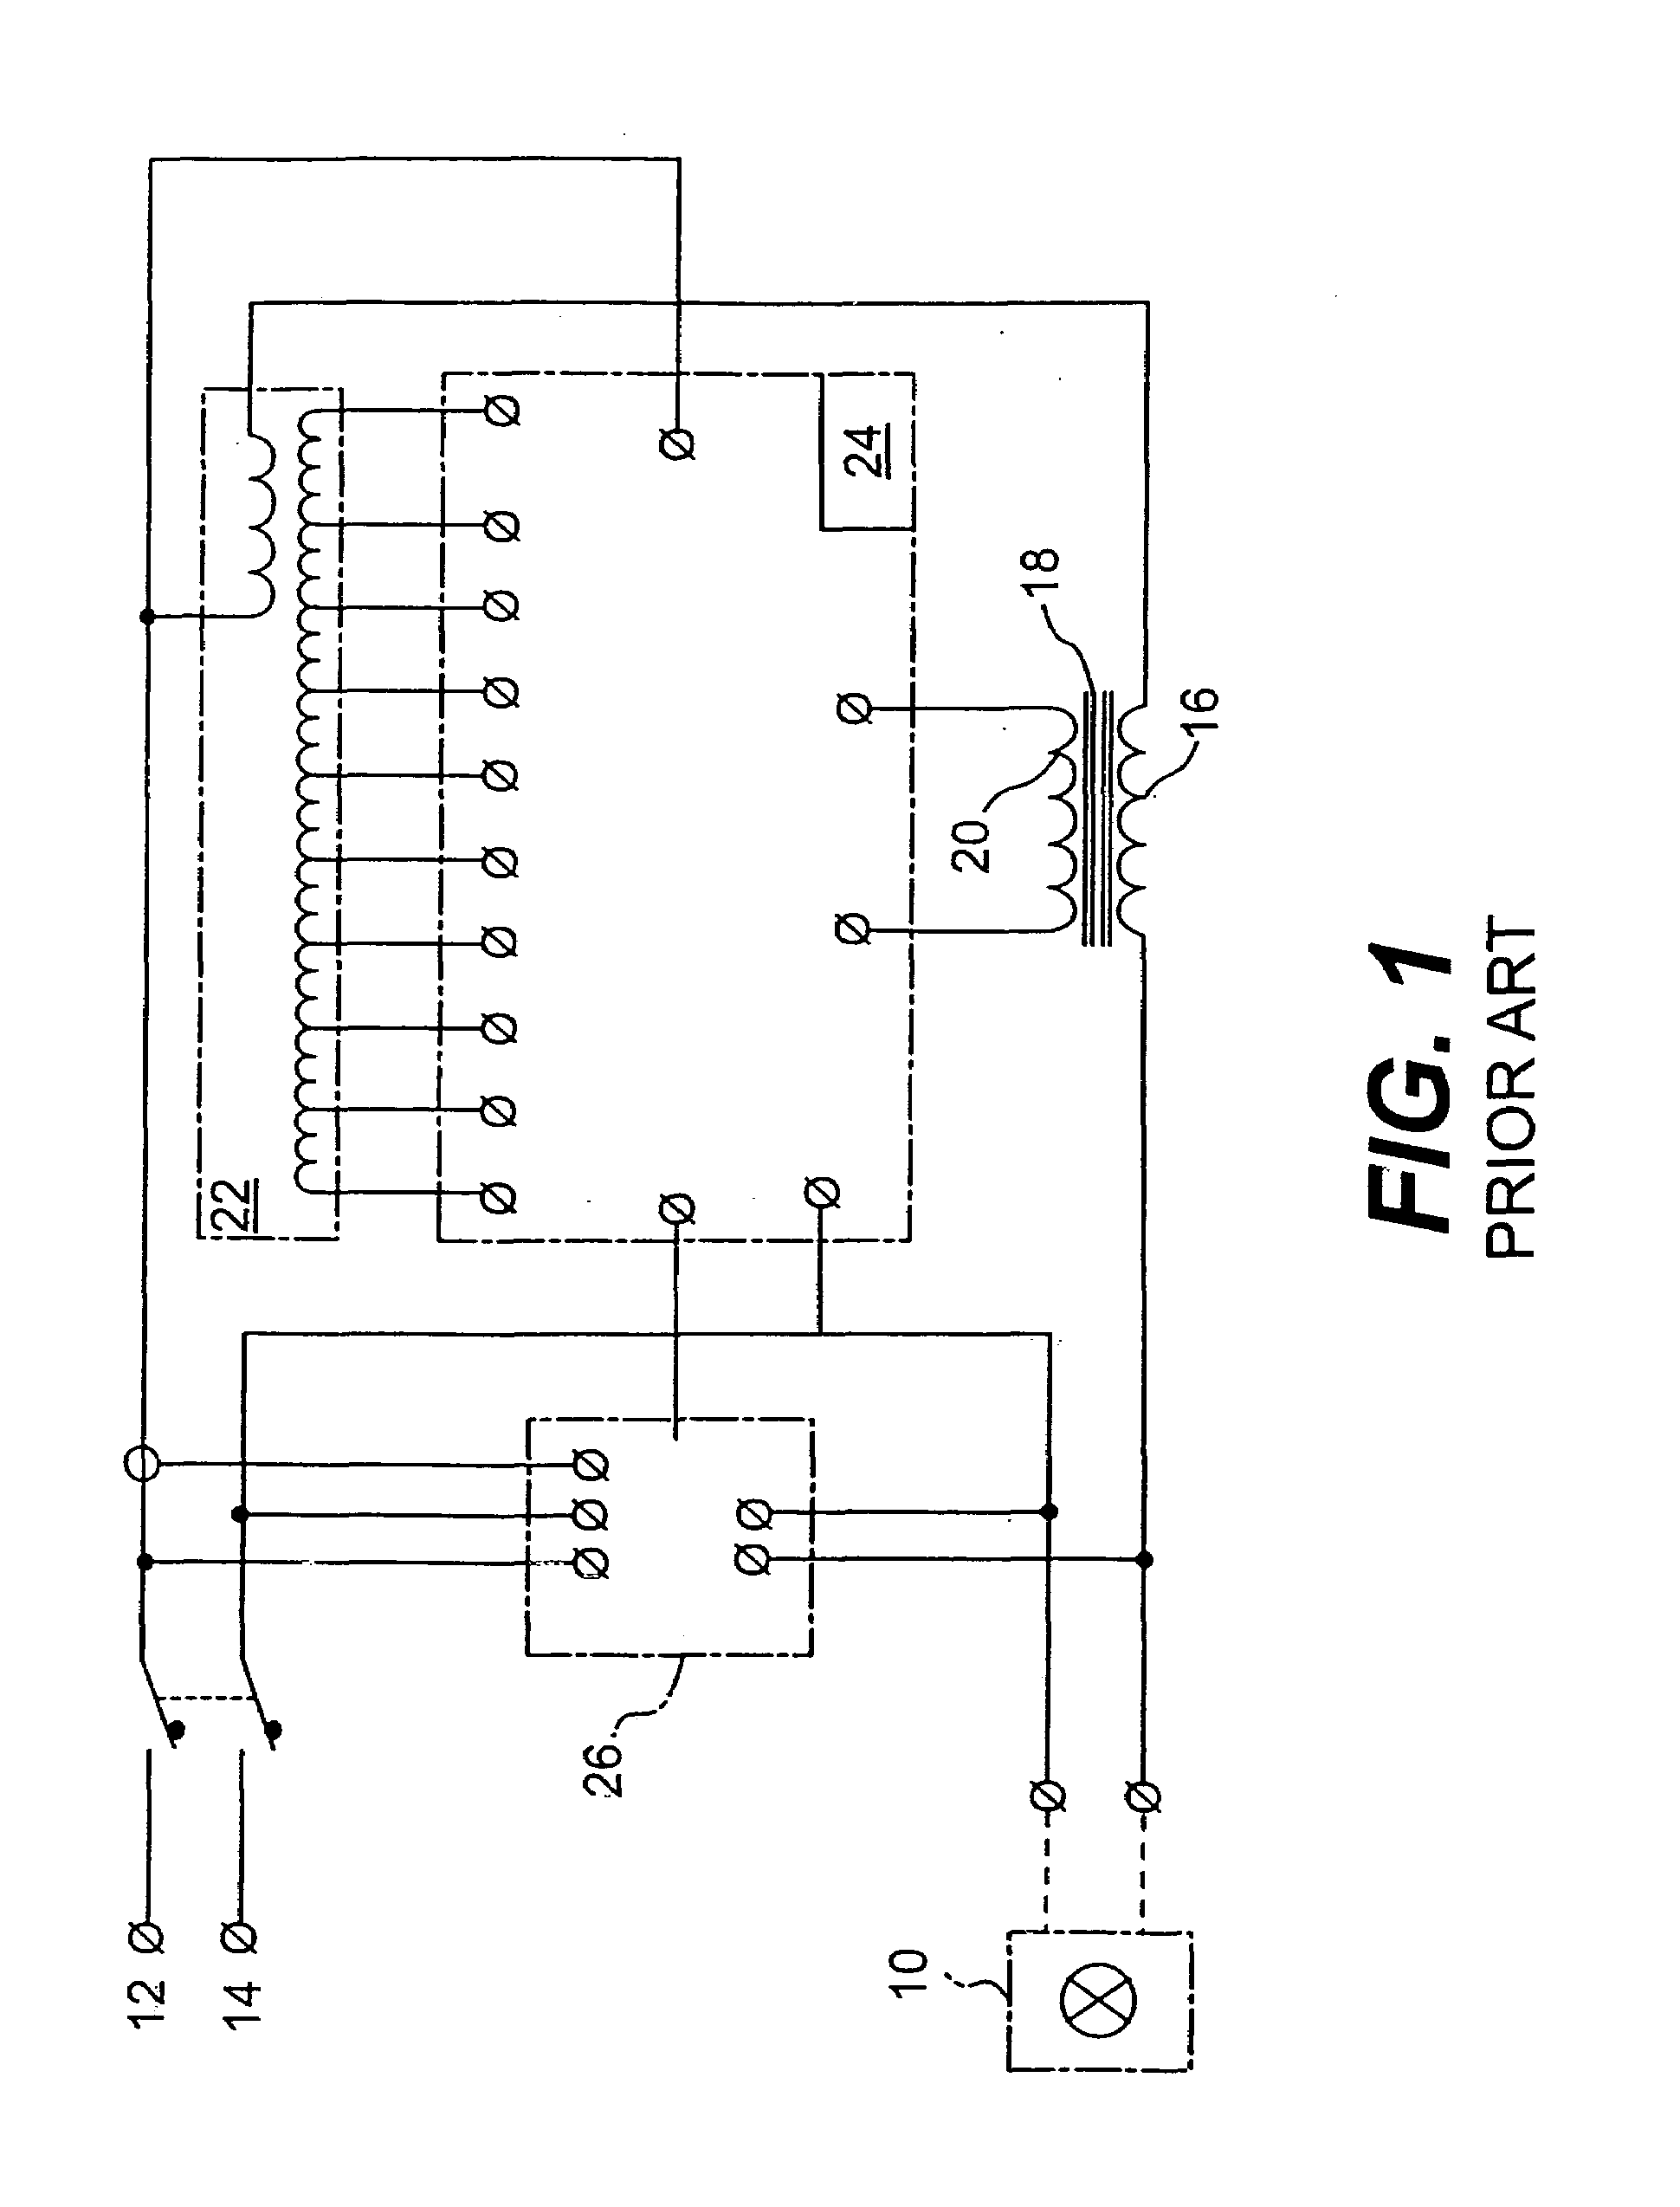 patent us7136724 - electrical power distribution system for street lighting